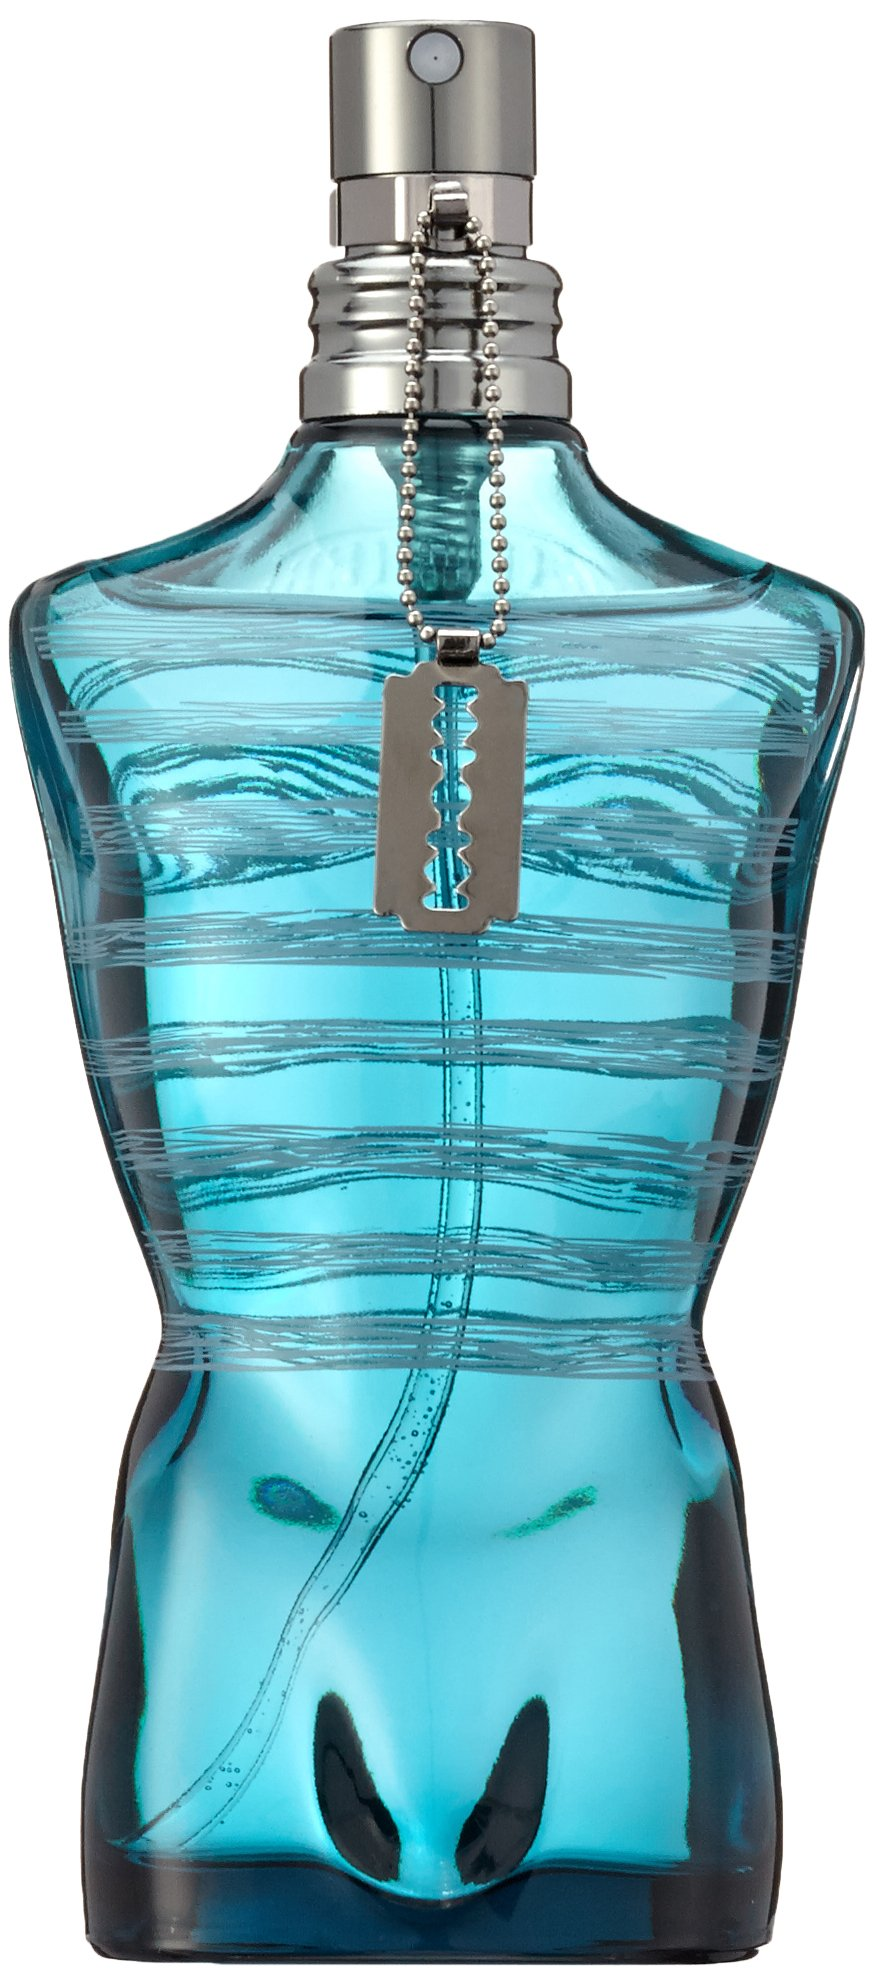 Jean Paul Gaultier Le Male Terrible Eau De Toilette Extreme Spray, 2.5 Ounce